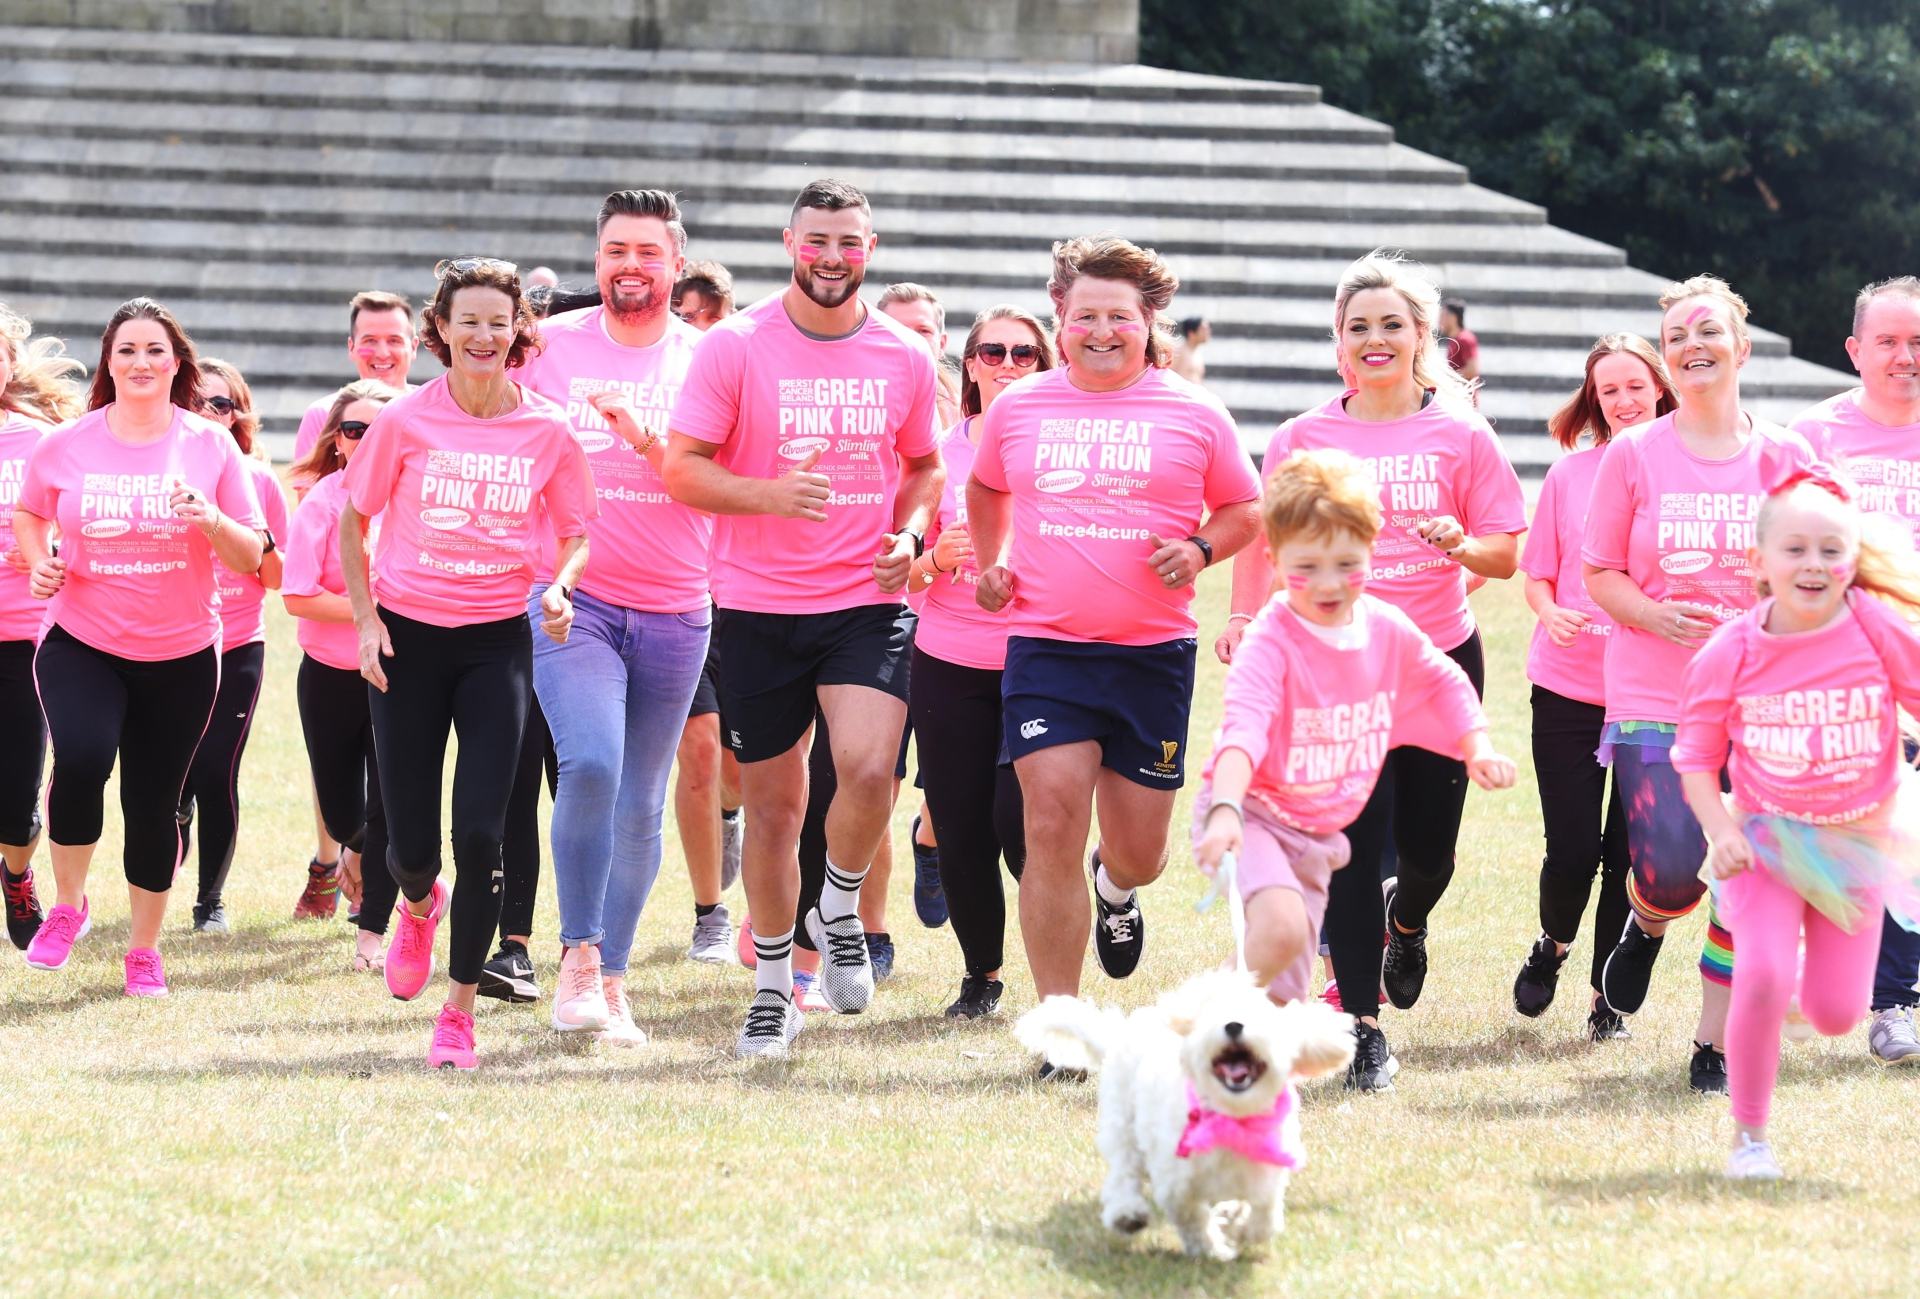 Great Pink Run Kilkenny 2018